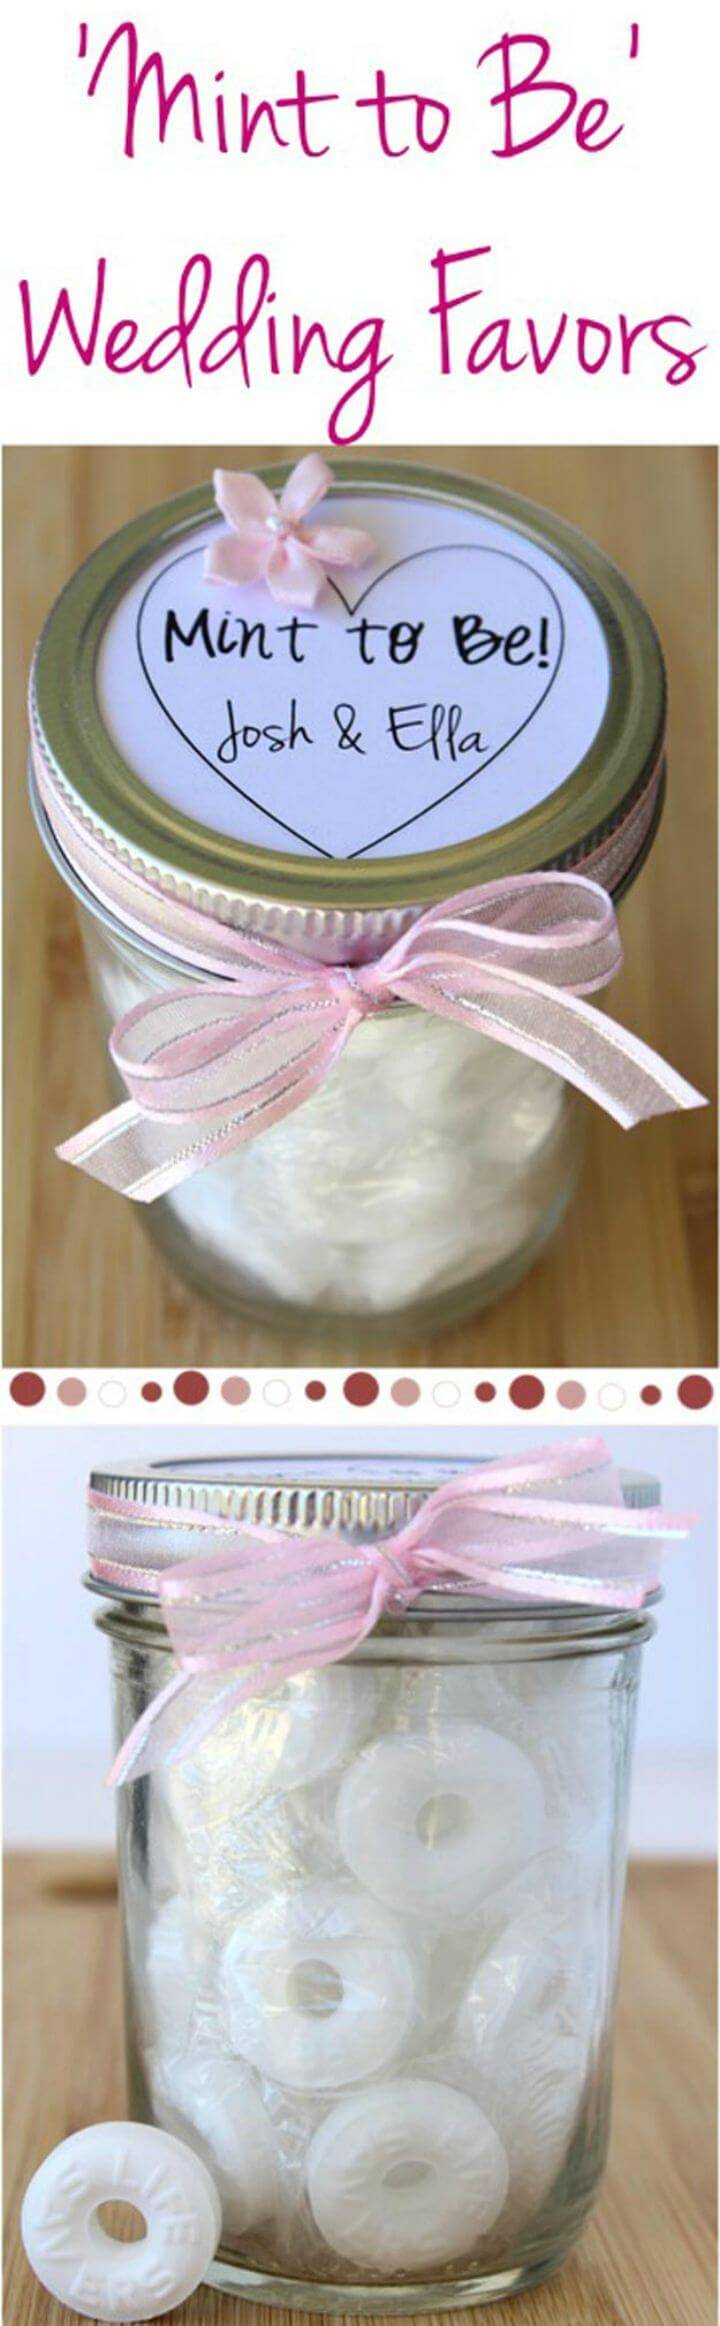 DIY Mint To Be Wedding Favors Gift In A Jar Pattern